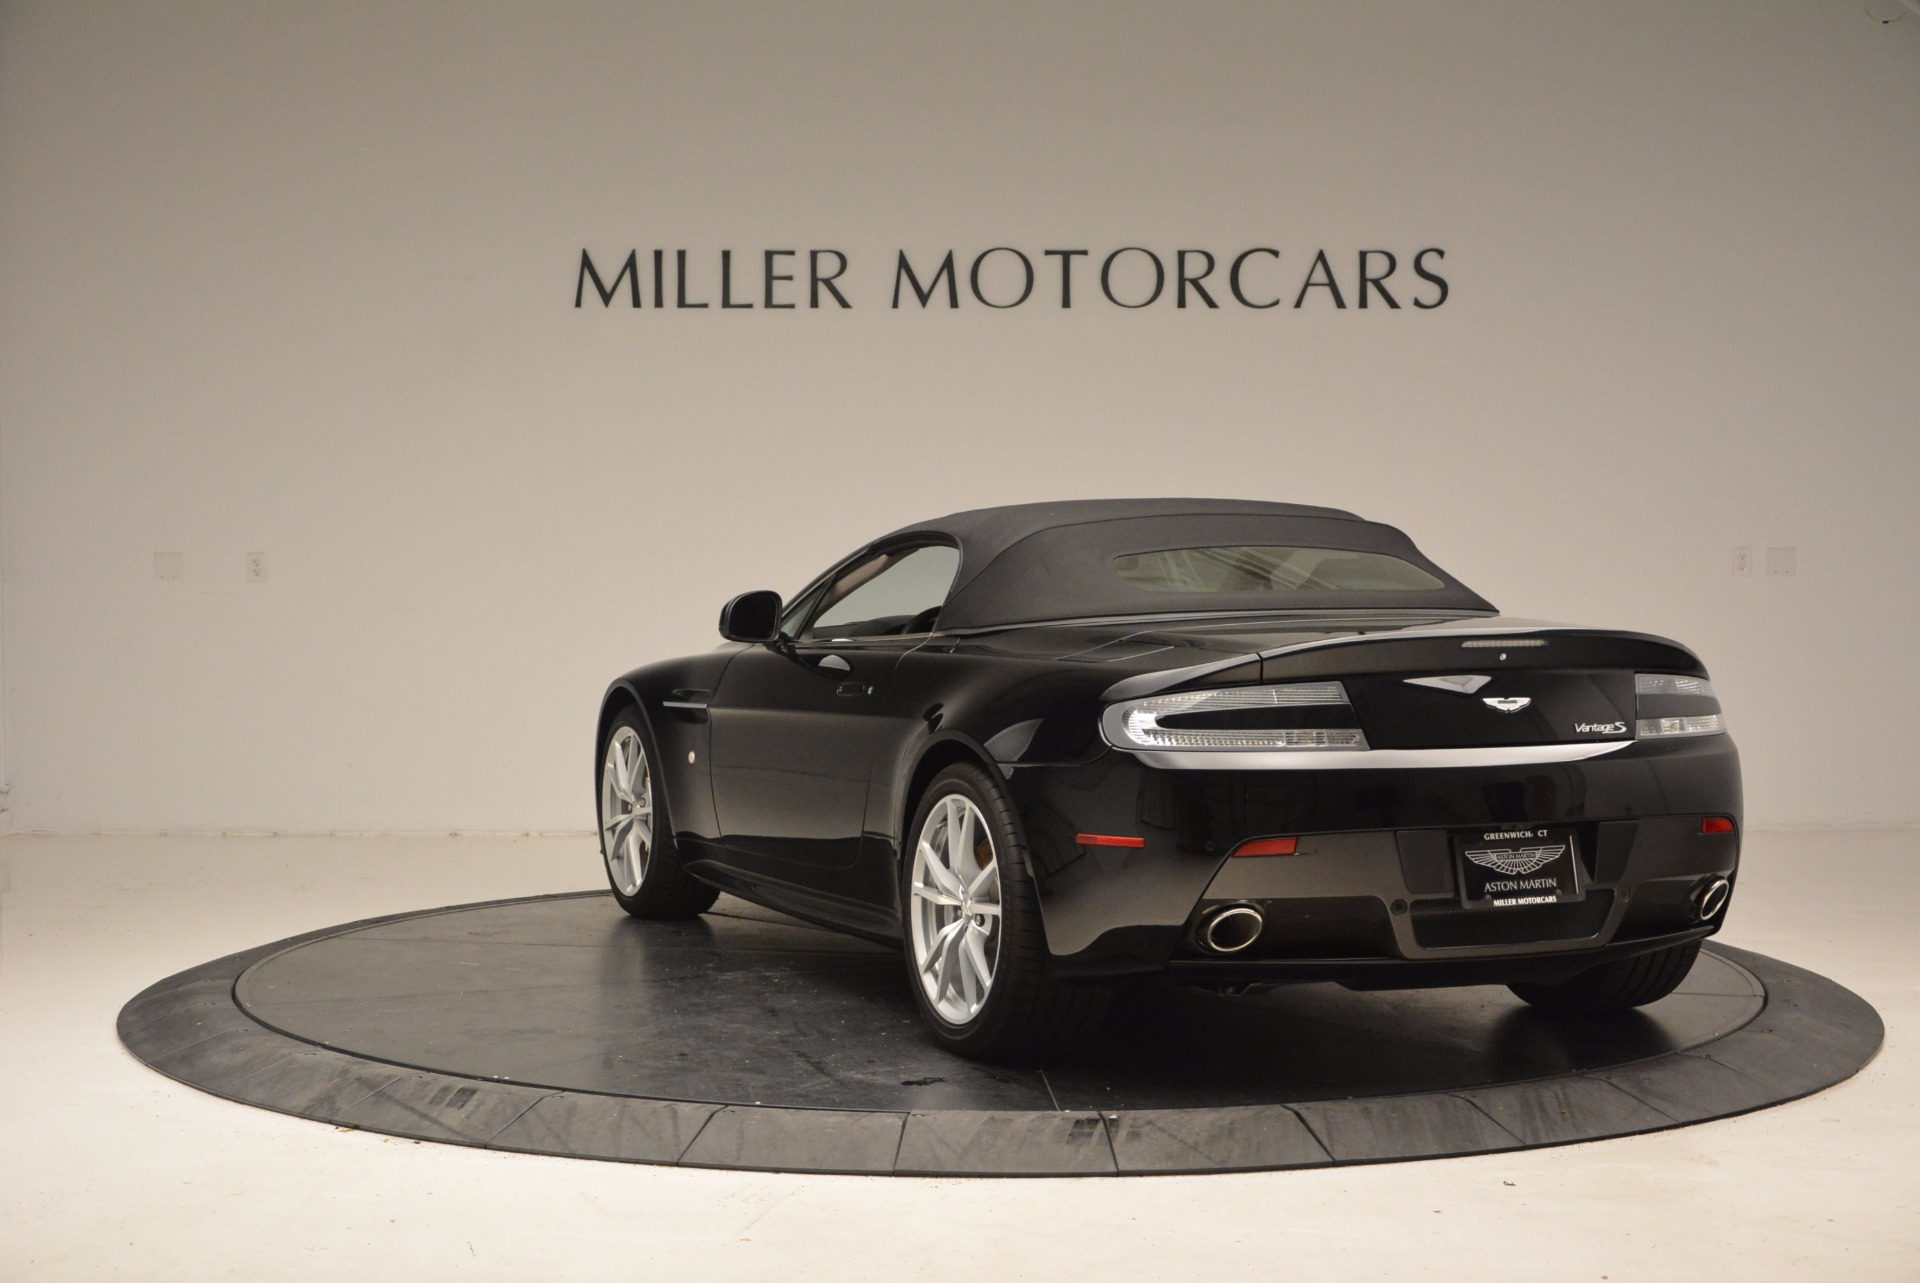 New 2016 Aston Martin V8 Vantage Roadster For Sale In Westport, CT 1546_p17